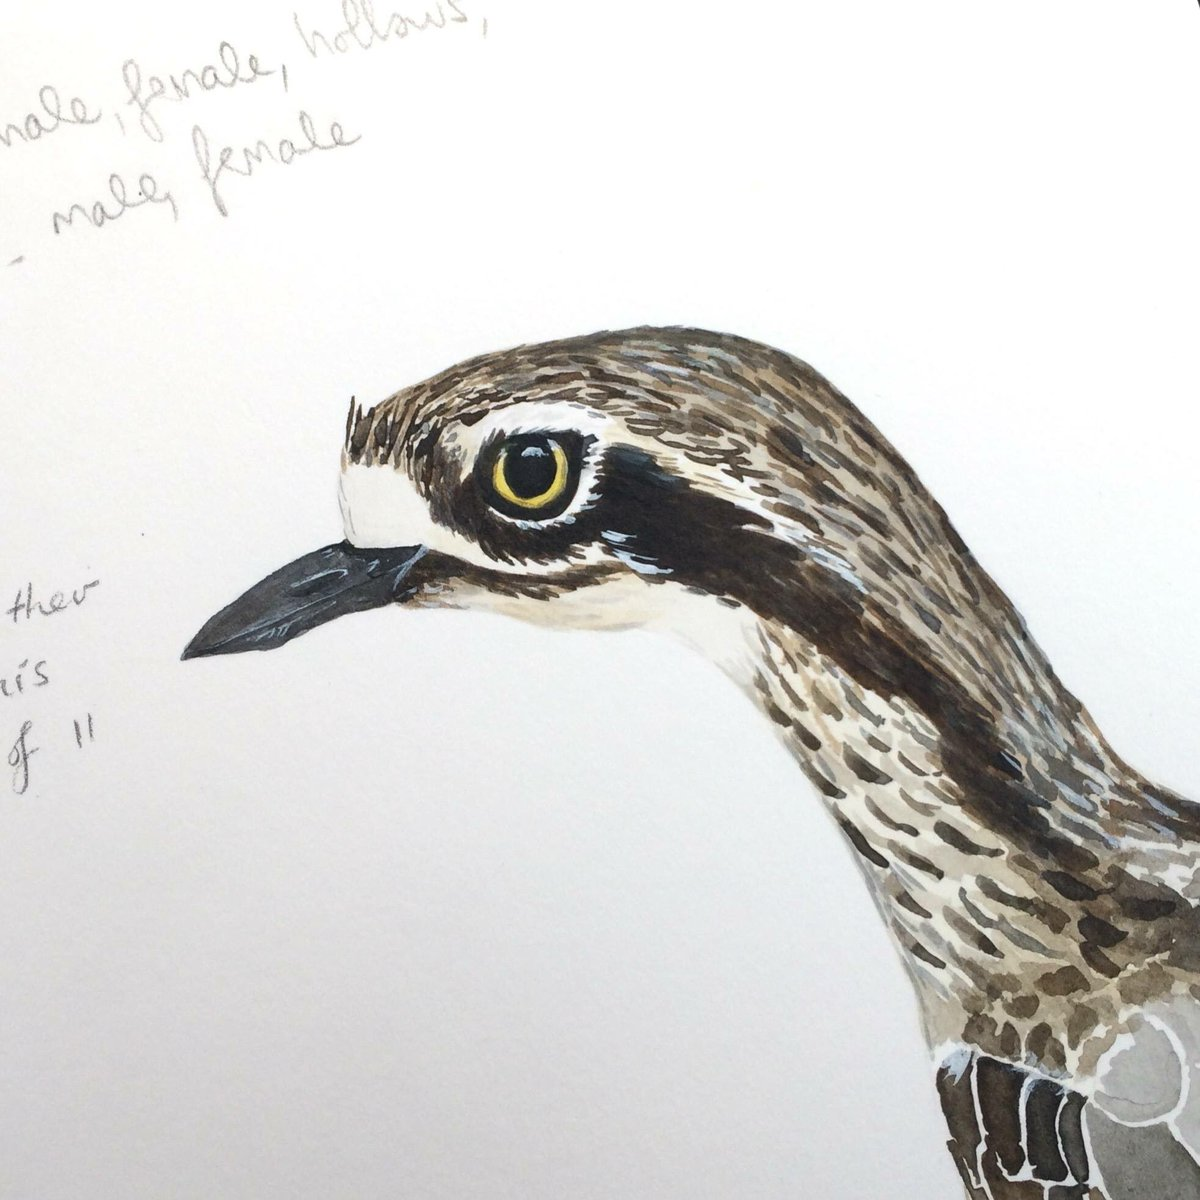 Bush Stone-curlew sketch by our new Artist in Residence Emily Birks. For more check out her site  http://www. emilybirks.com  &nbsp;   #sciart #canberra<br>http://pic.twitter.com/N98kiL0RZI